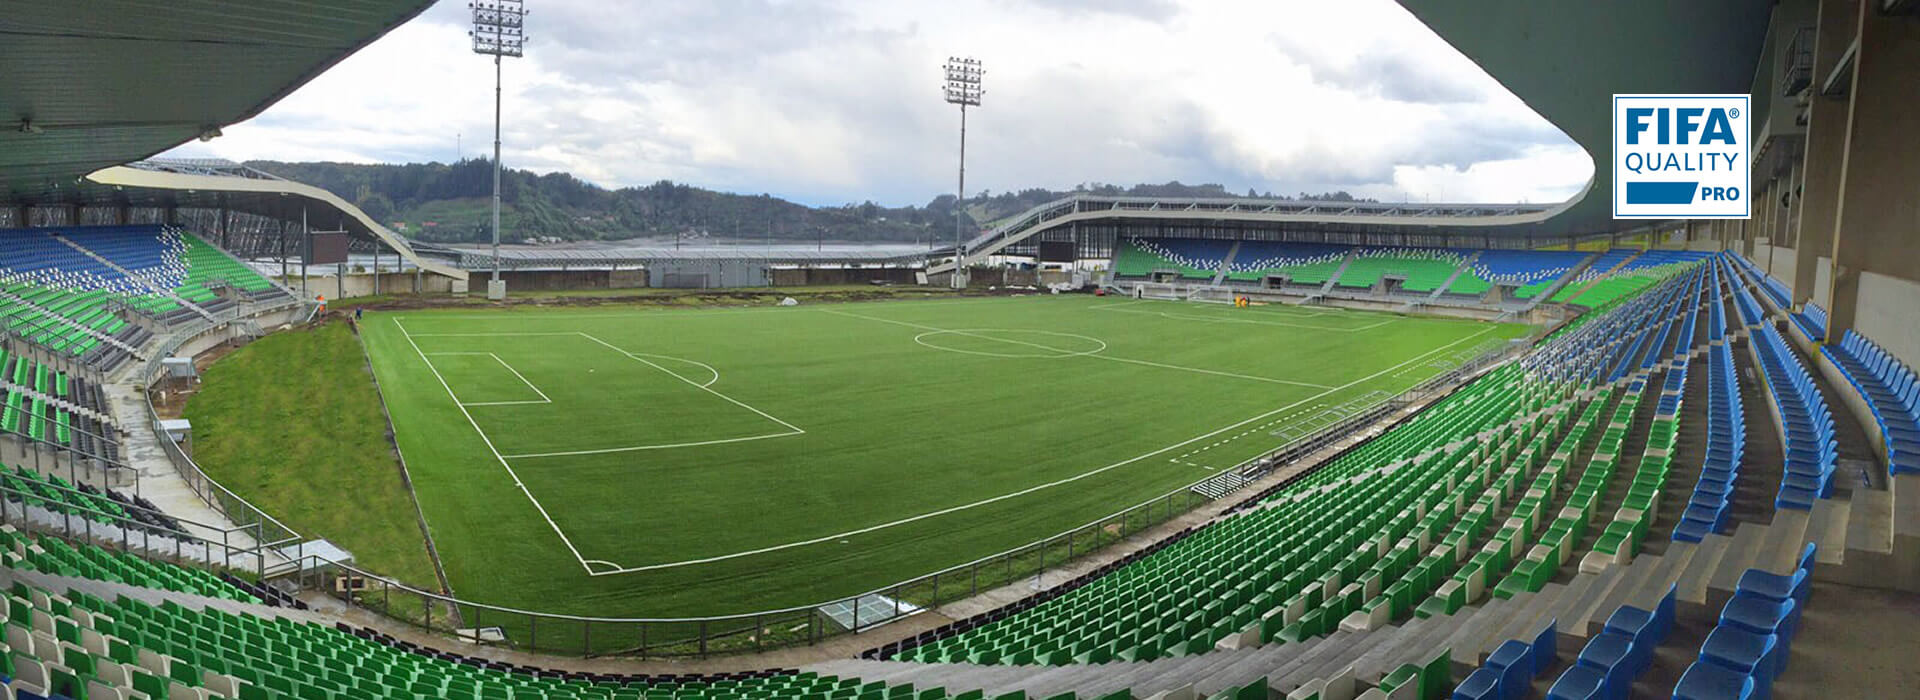 CCGrass artificial grass surface for FIFA U-17